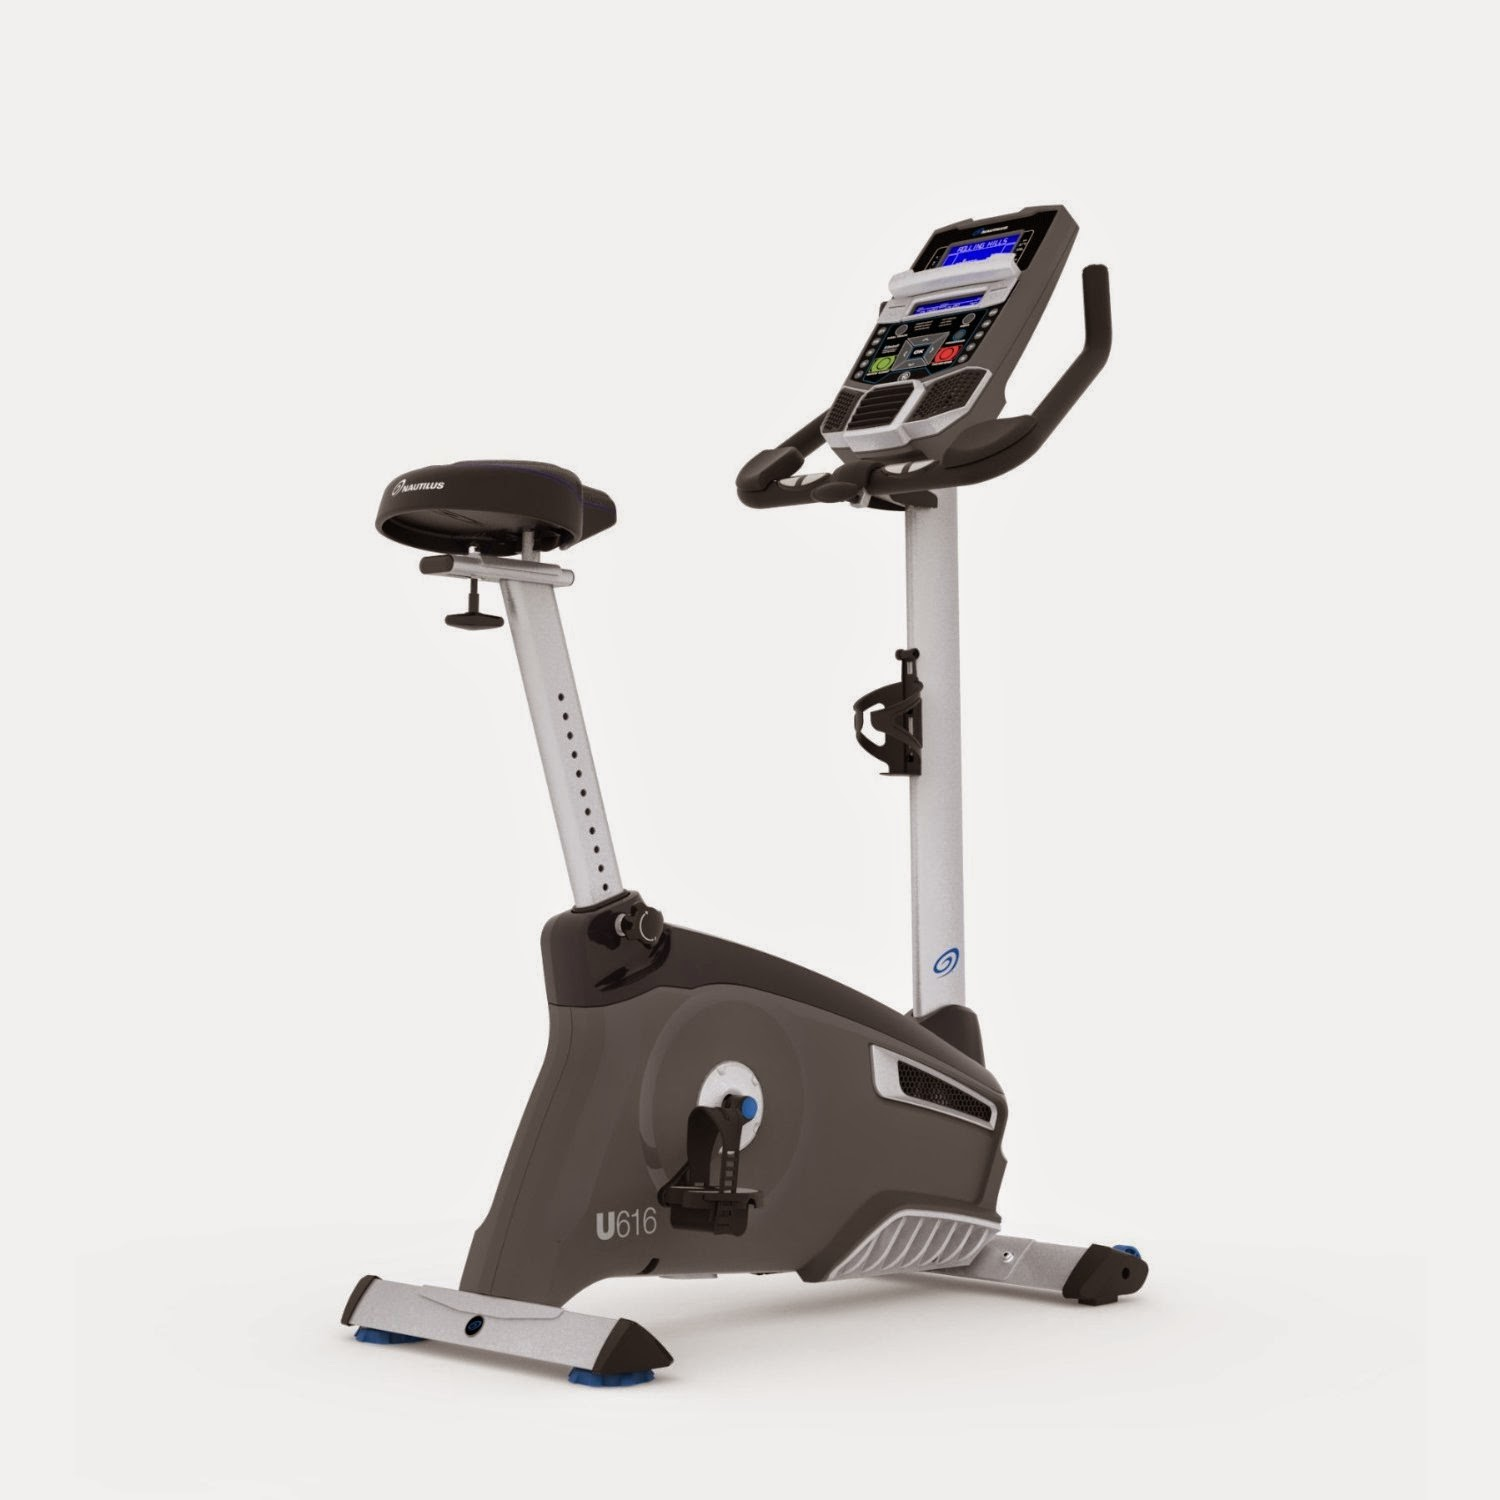 Nautilus U616 Upright Exercise Bike, picture, image, review features & specifications, compare with Nautilus U614